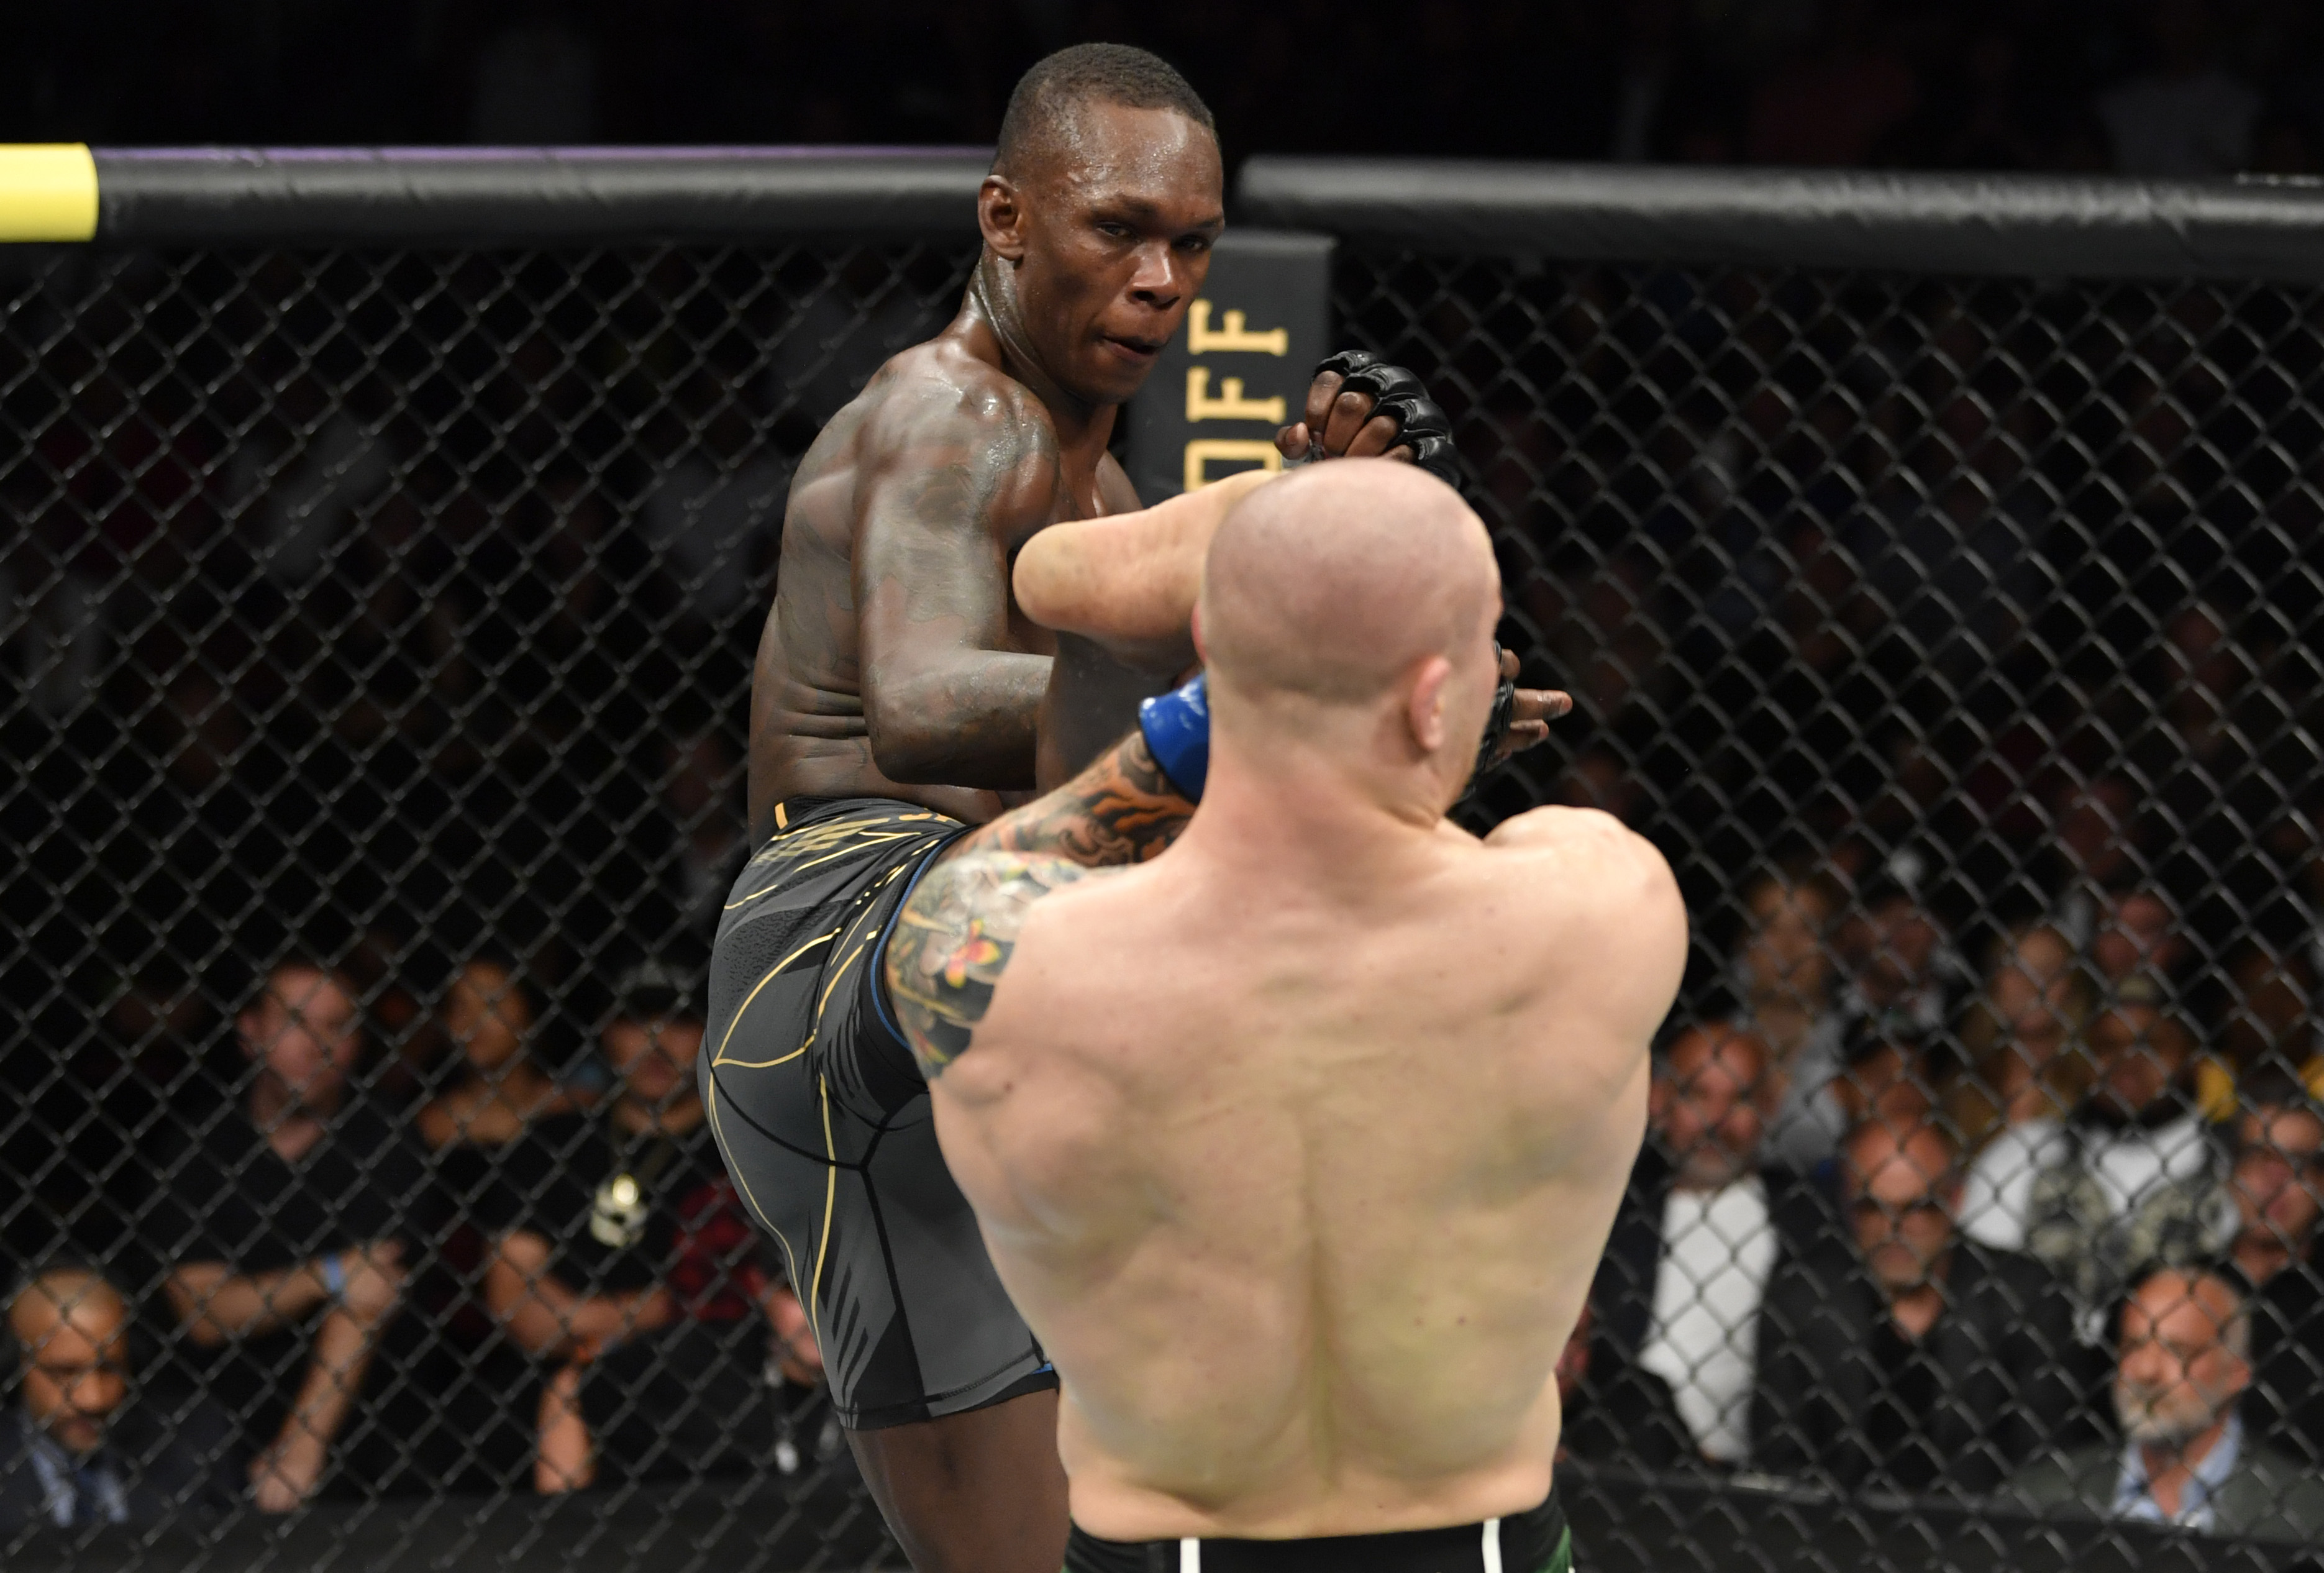 Israel Adesanya lands a kick on Marvin Vettori in the main event of UFC 263.